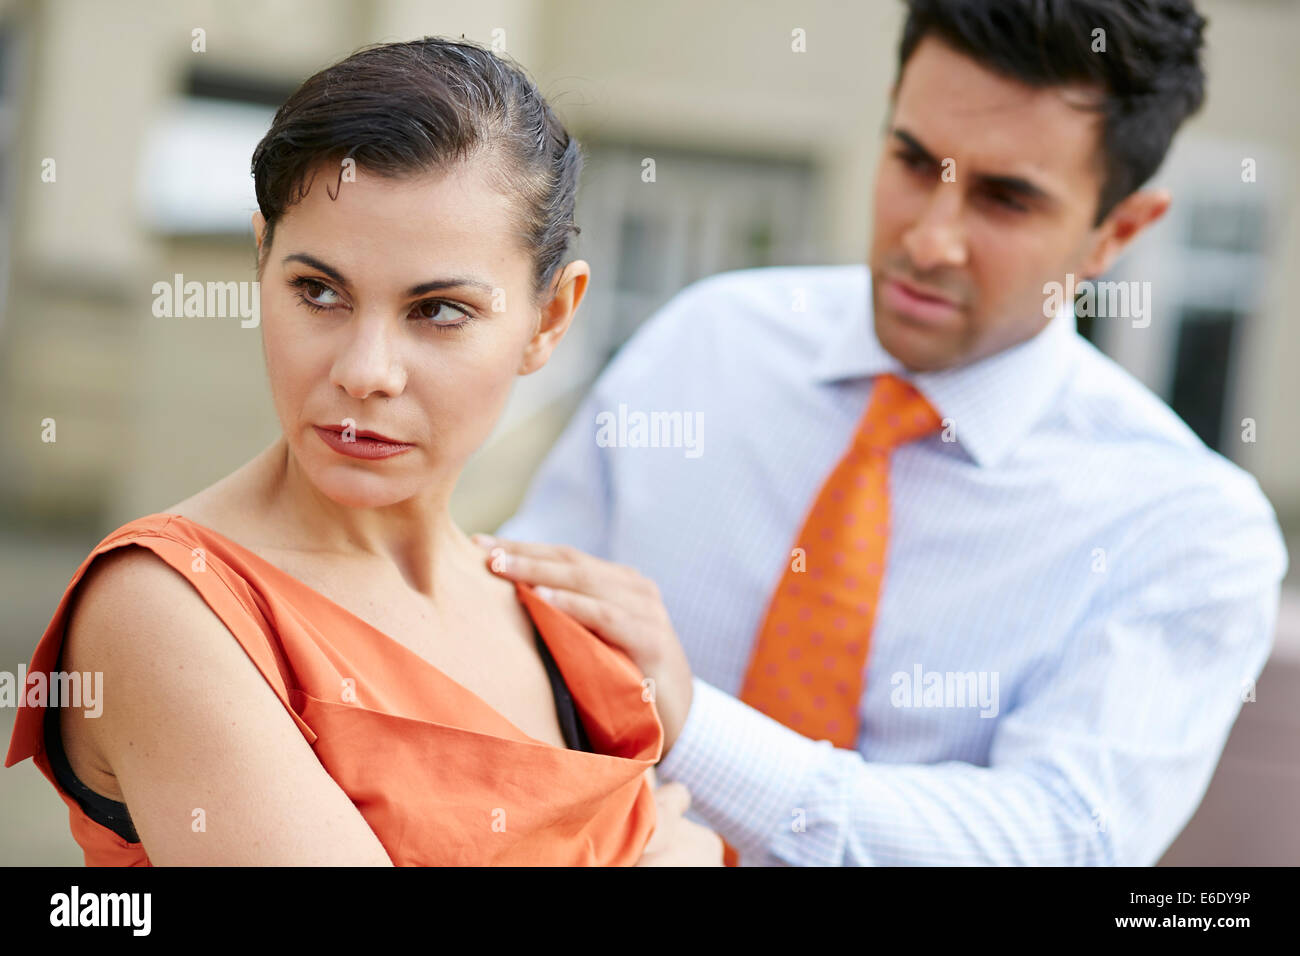 Couple consoling - Stock Image